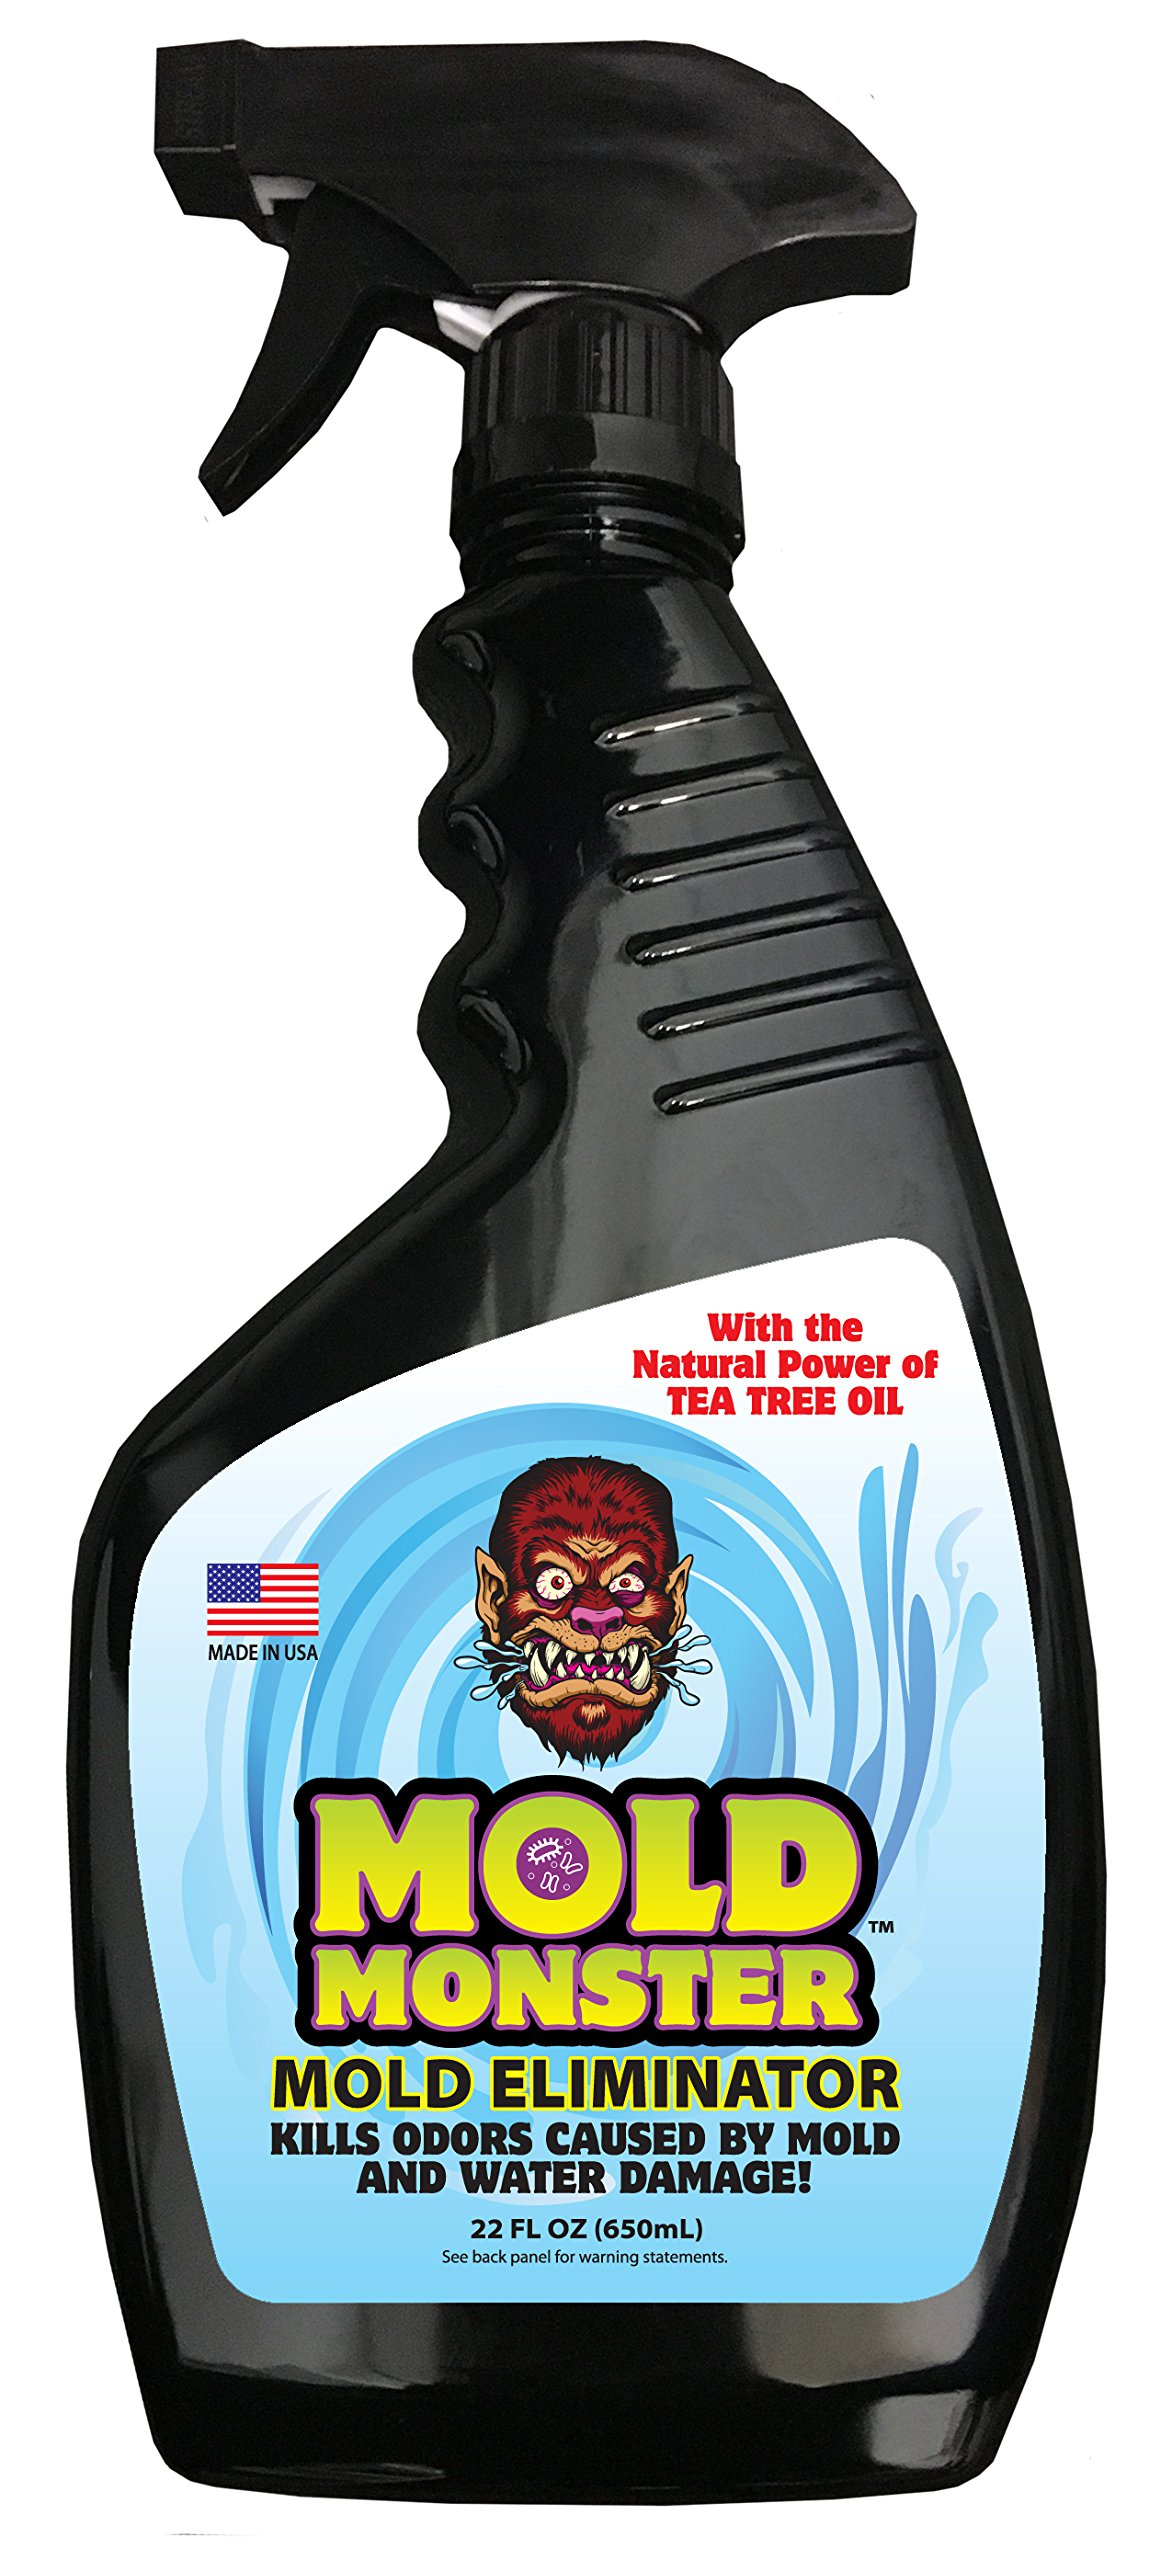 Mold Monster Water Damage Mold and Odor Remover - Effective on Water Based Mold, Mildew & Water Damage - Non-Toxic - 22 oz Spray Bottle … by Mold Monster